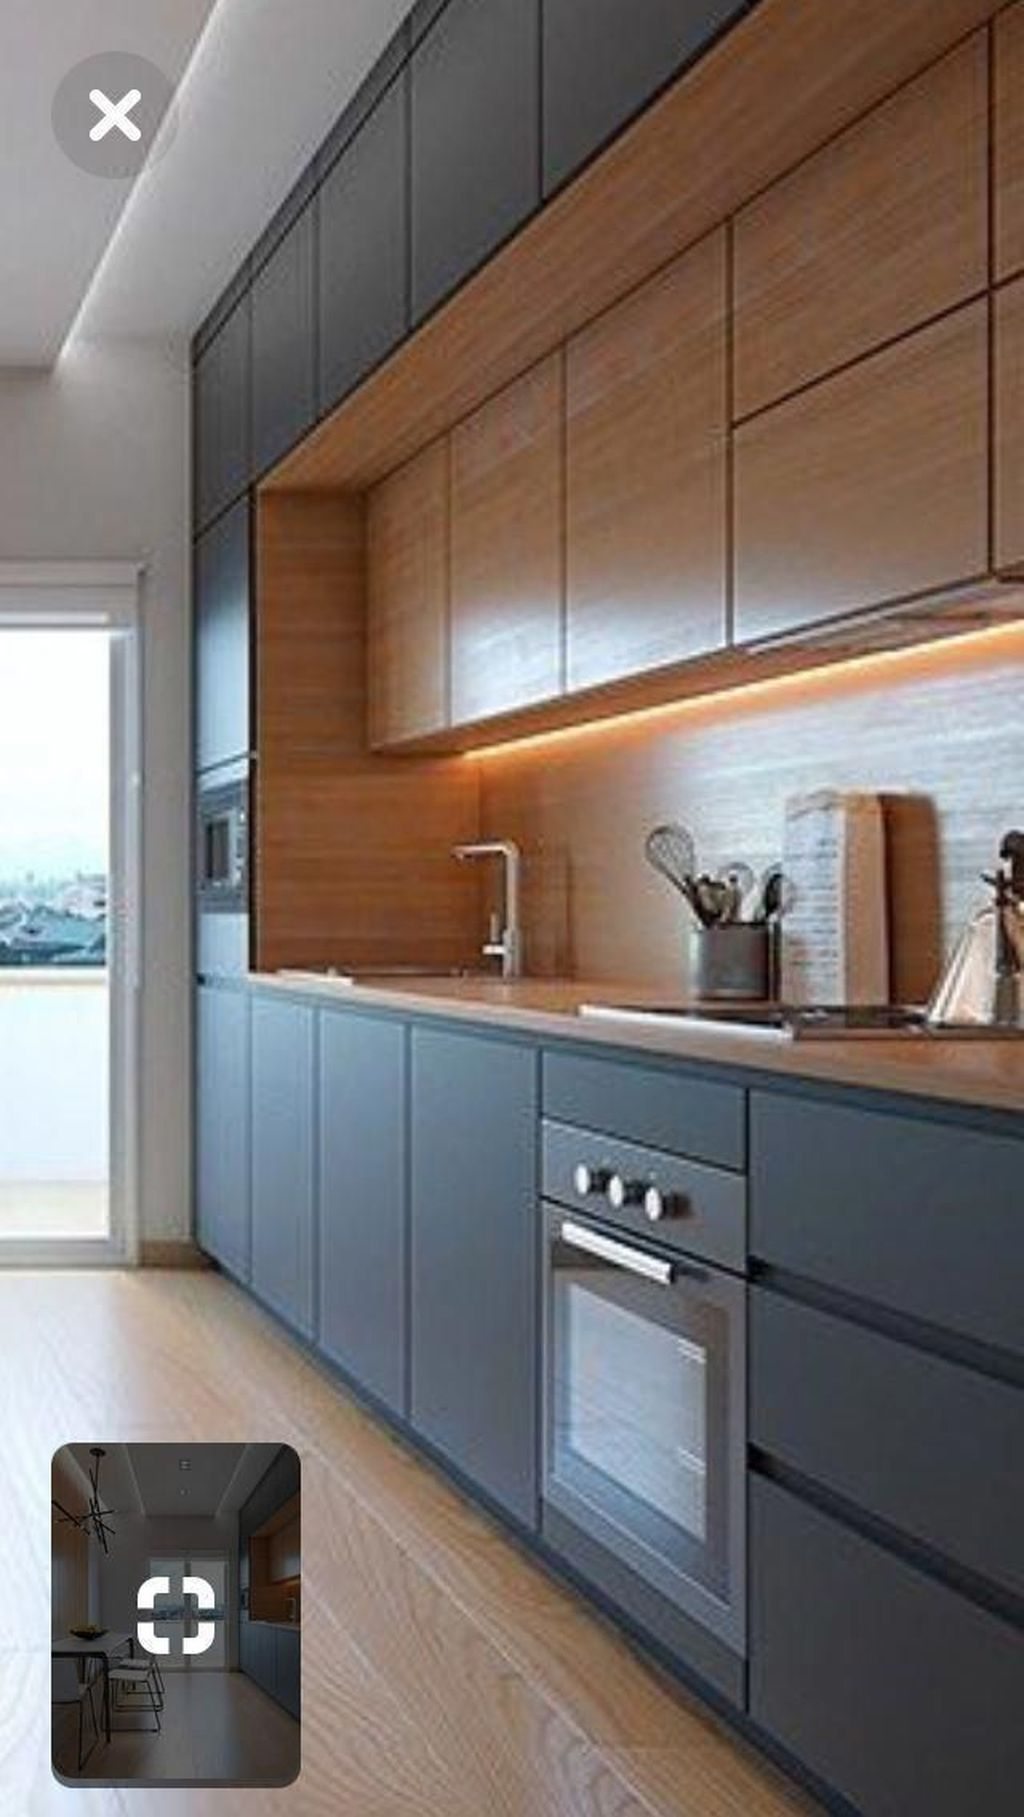 Elegant Minimalist Kitchen Design Ideas For Small Space To Try 08